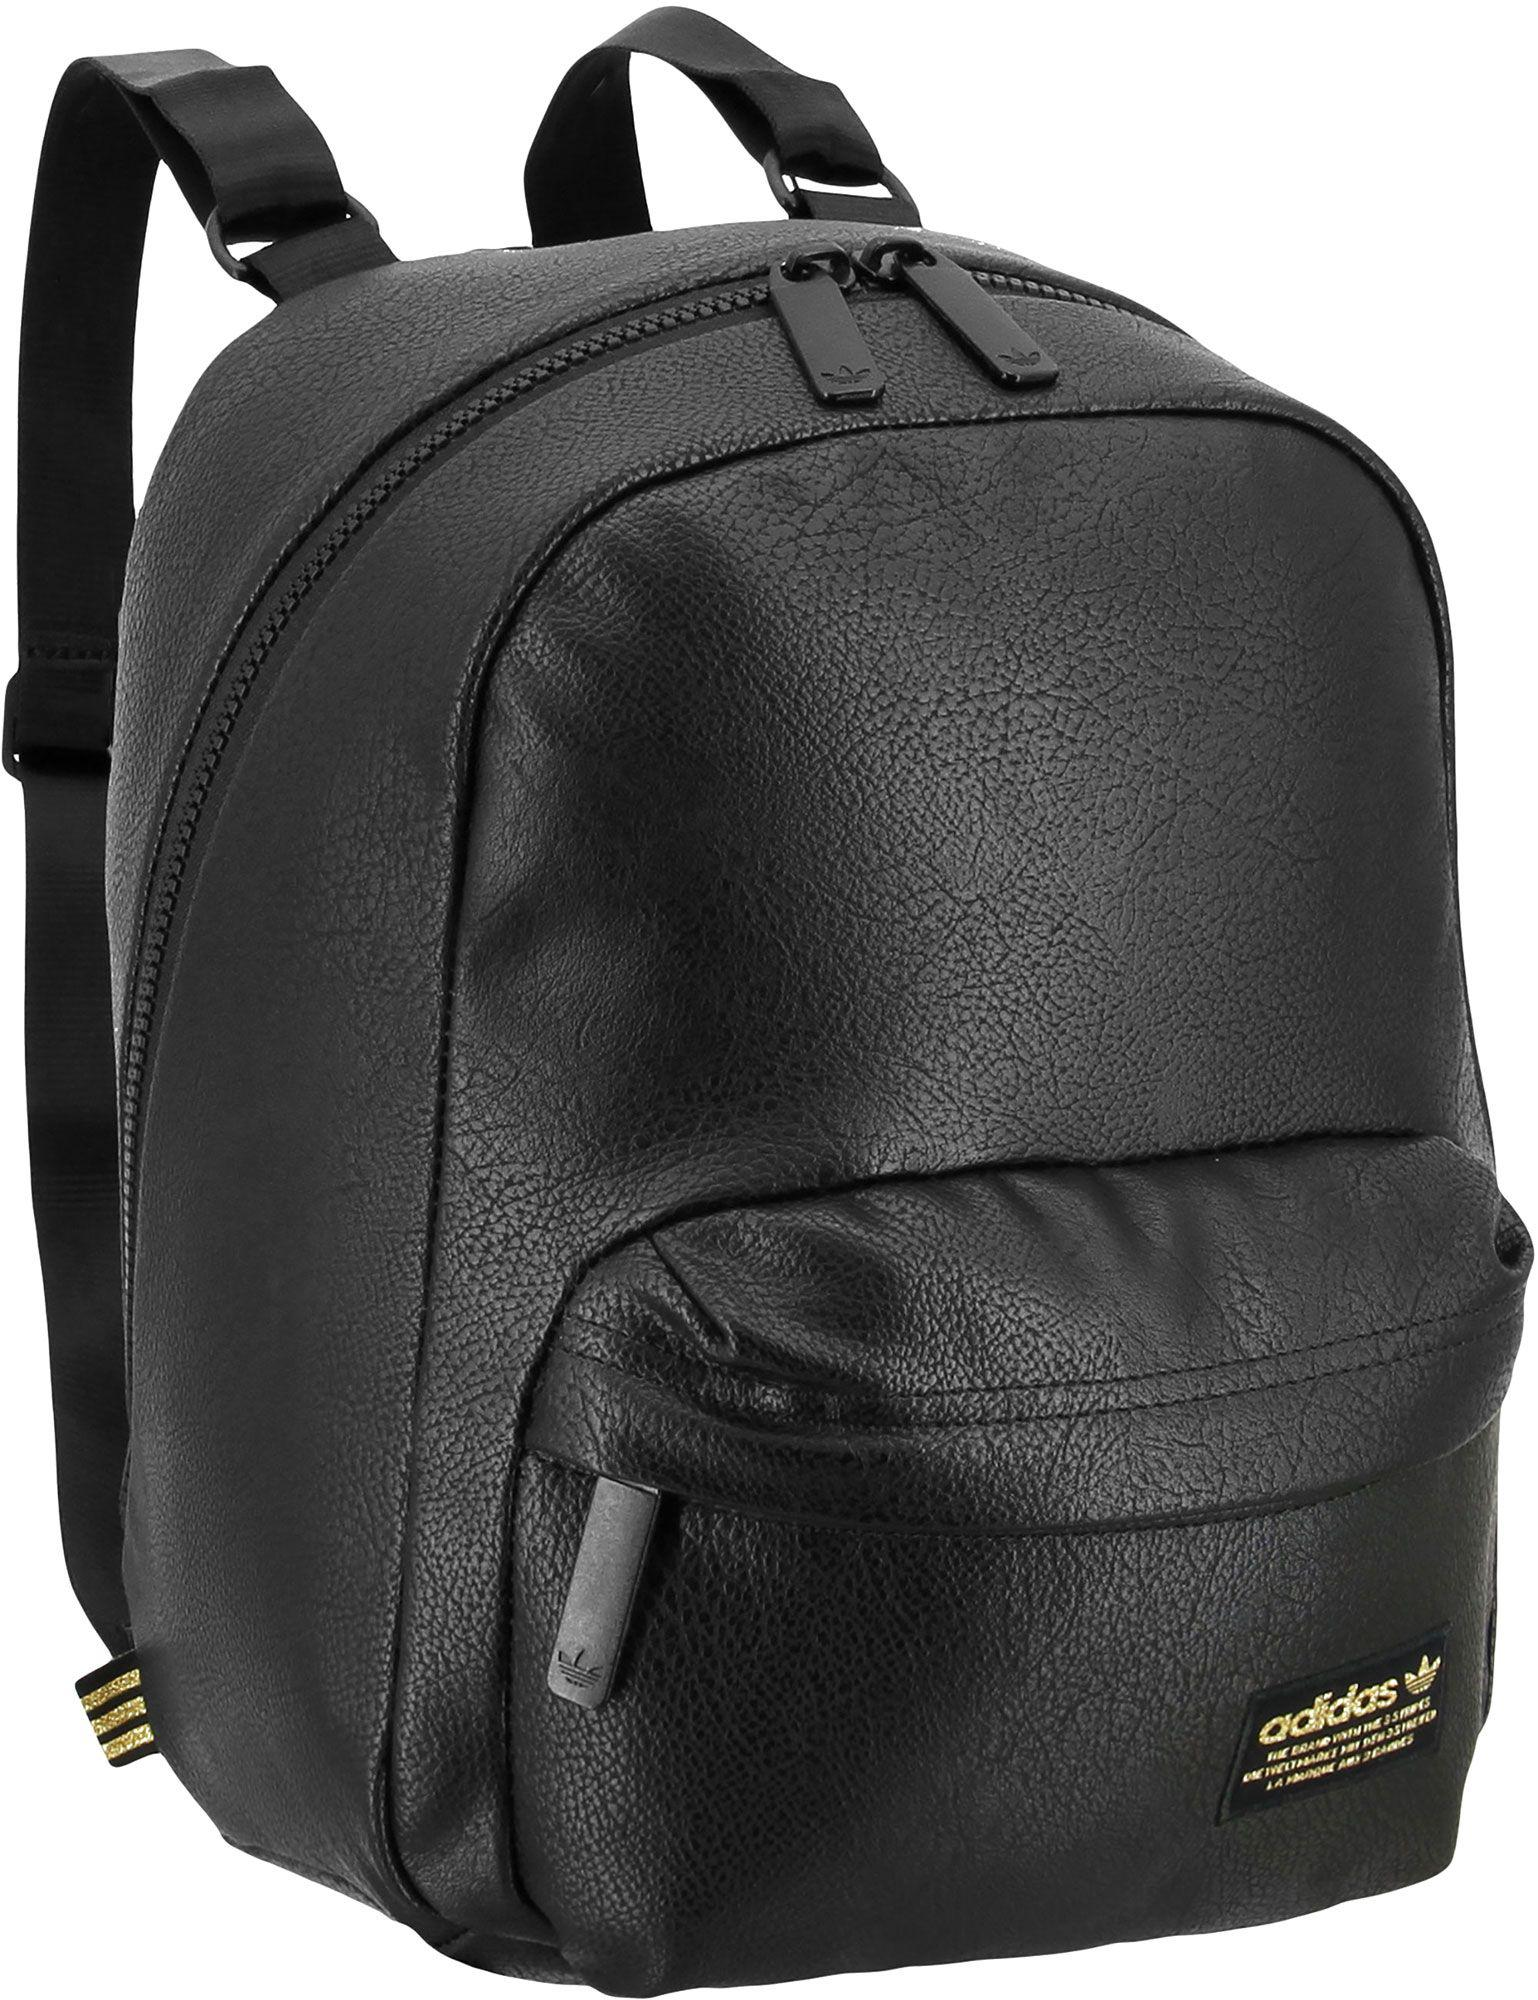 31ed8a0e9cd1 Lyst - adidas Originals National Compact Premium Backpack in Black